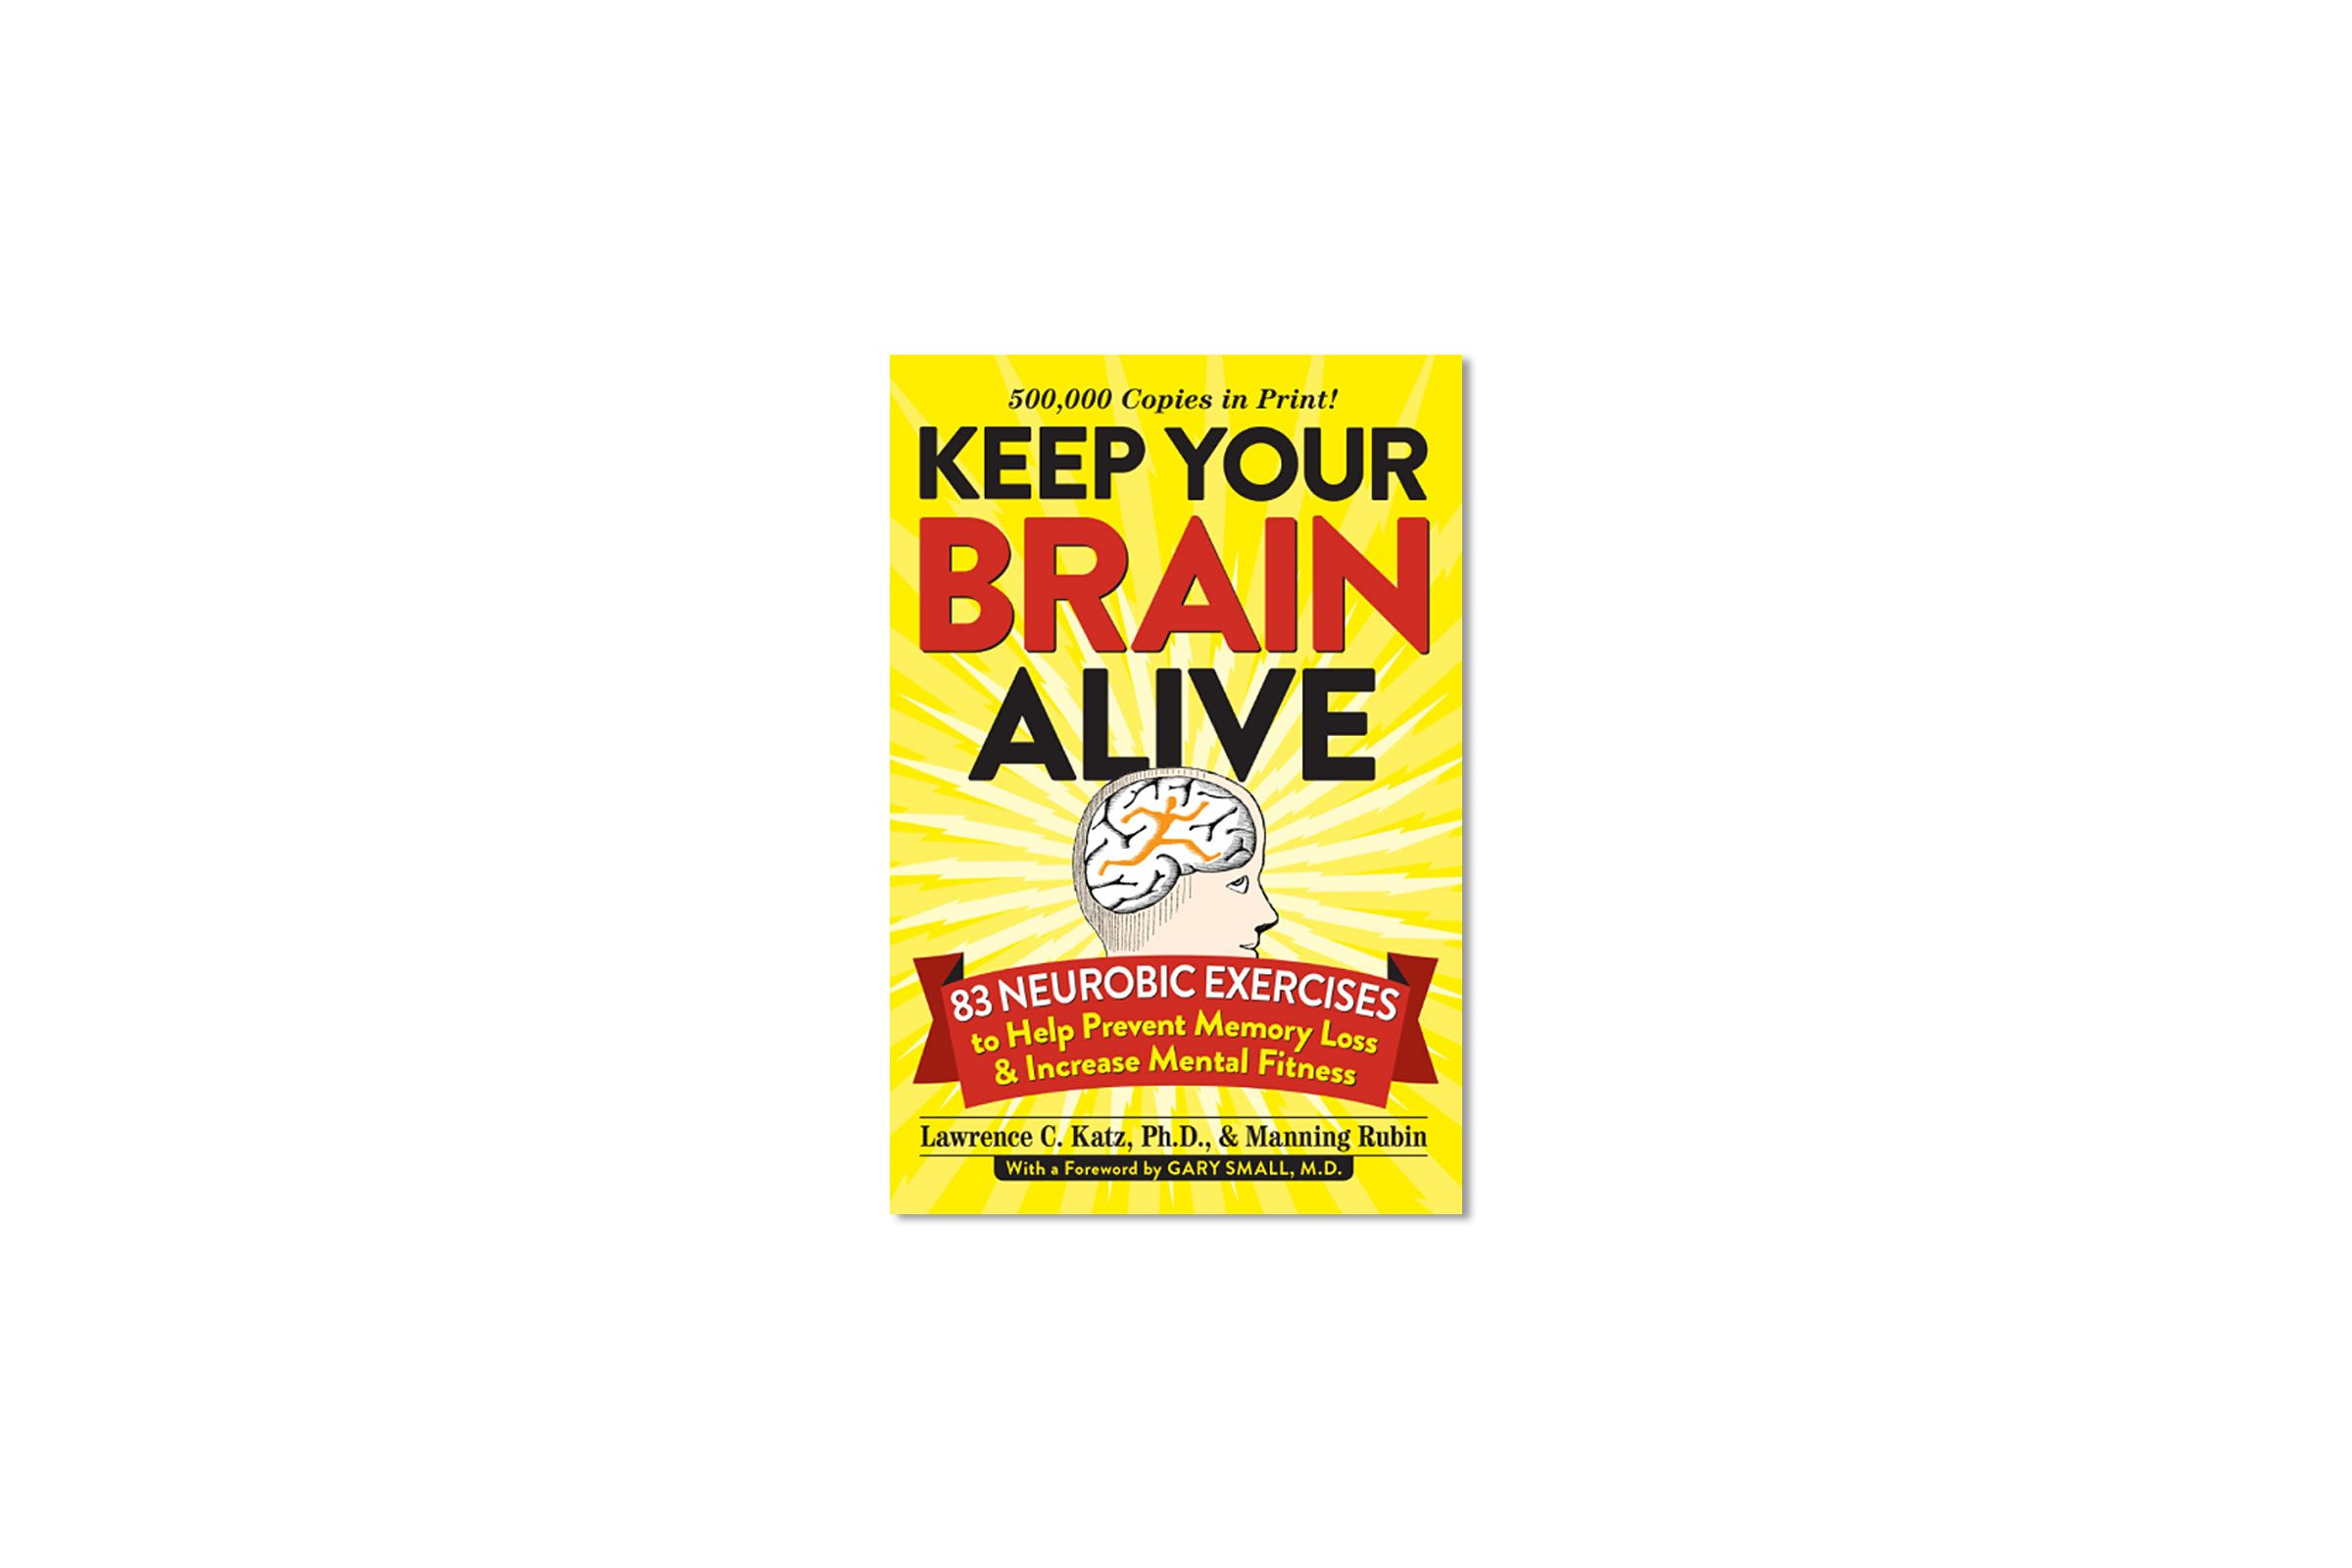 Get More Brain Workouts